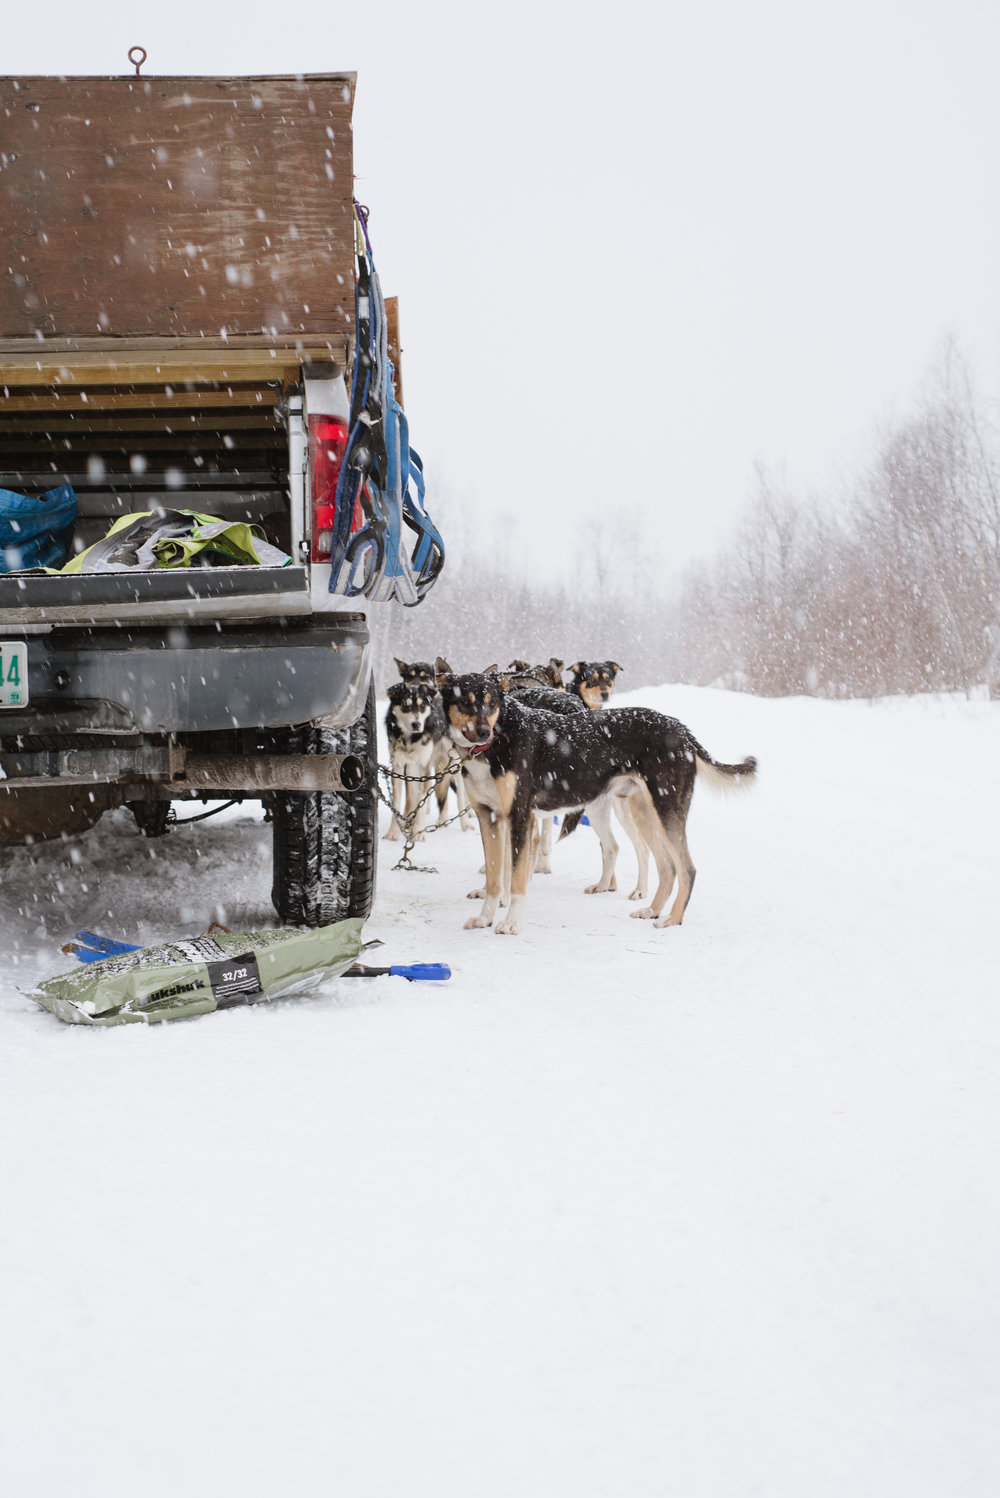 Meet The Local Sally Manikian Shady Pines Sled Dog Team Snow Hd Wiring Harness Shadypines 9